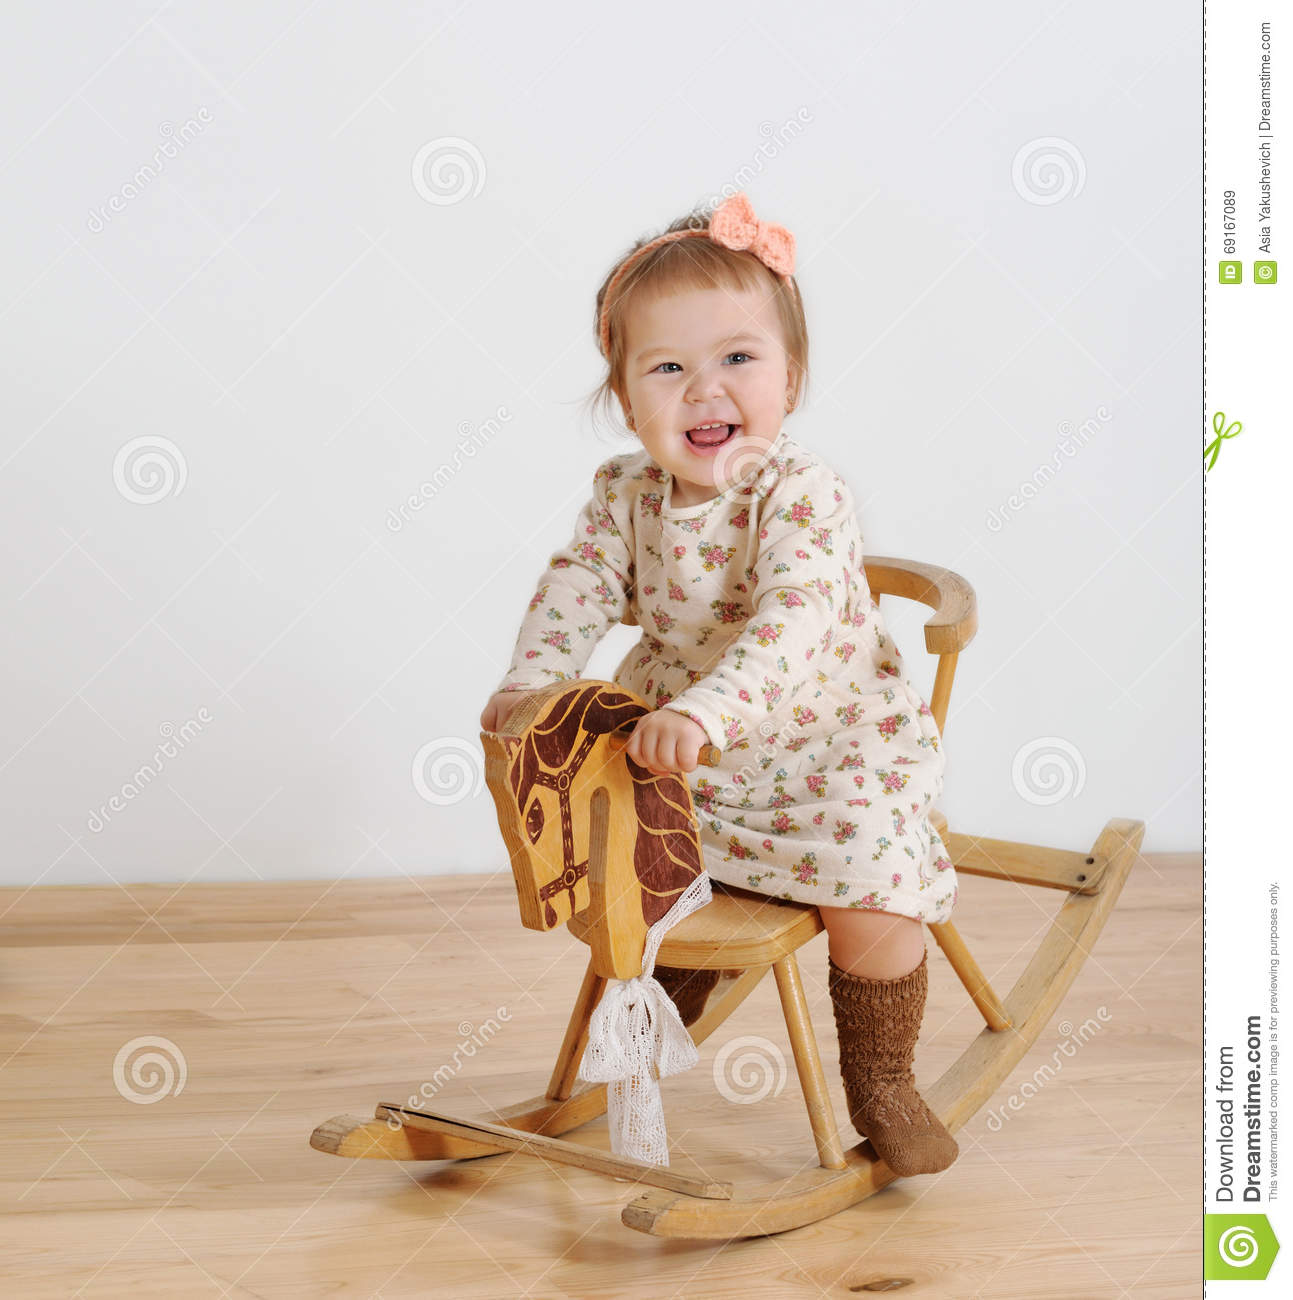 Happy Little Child And A Rocking Horse Stock Photo